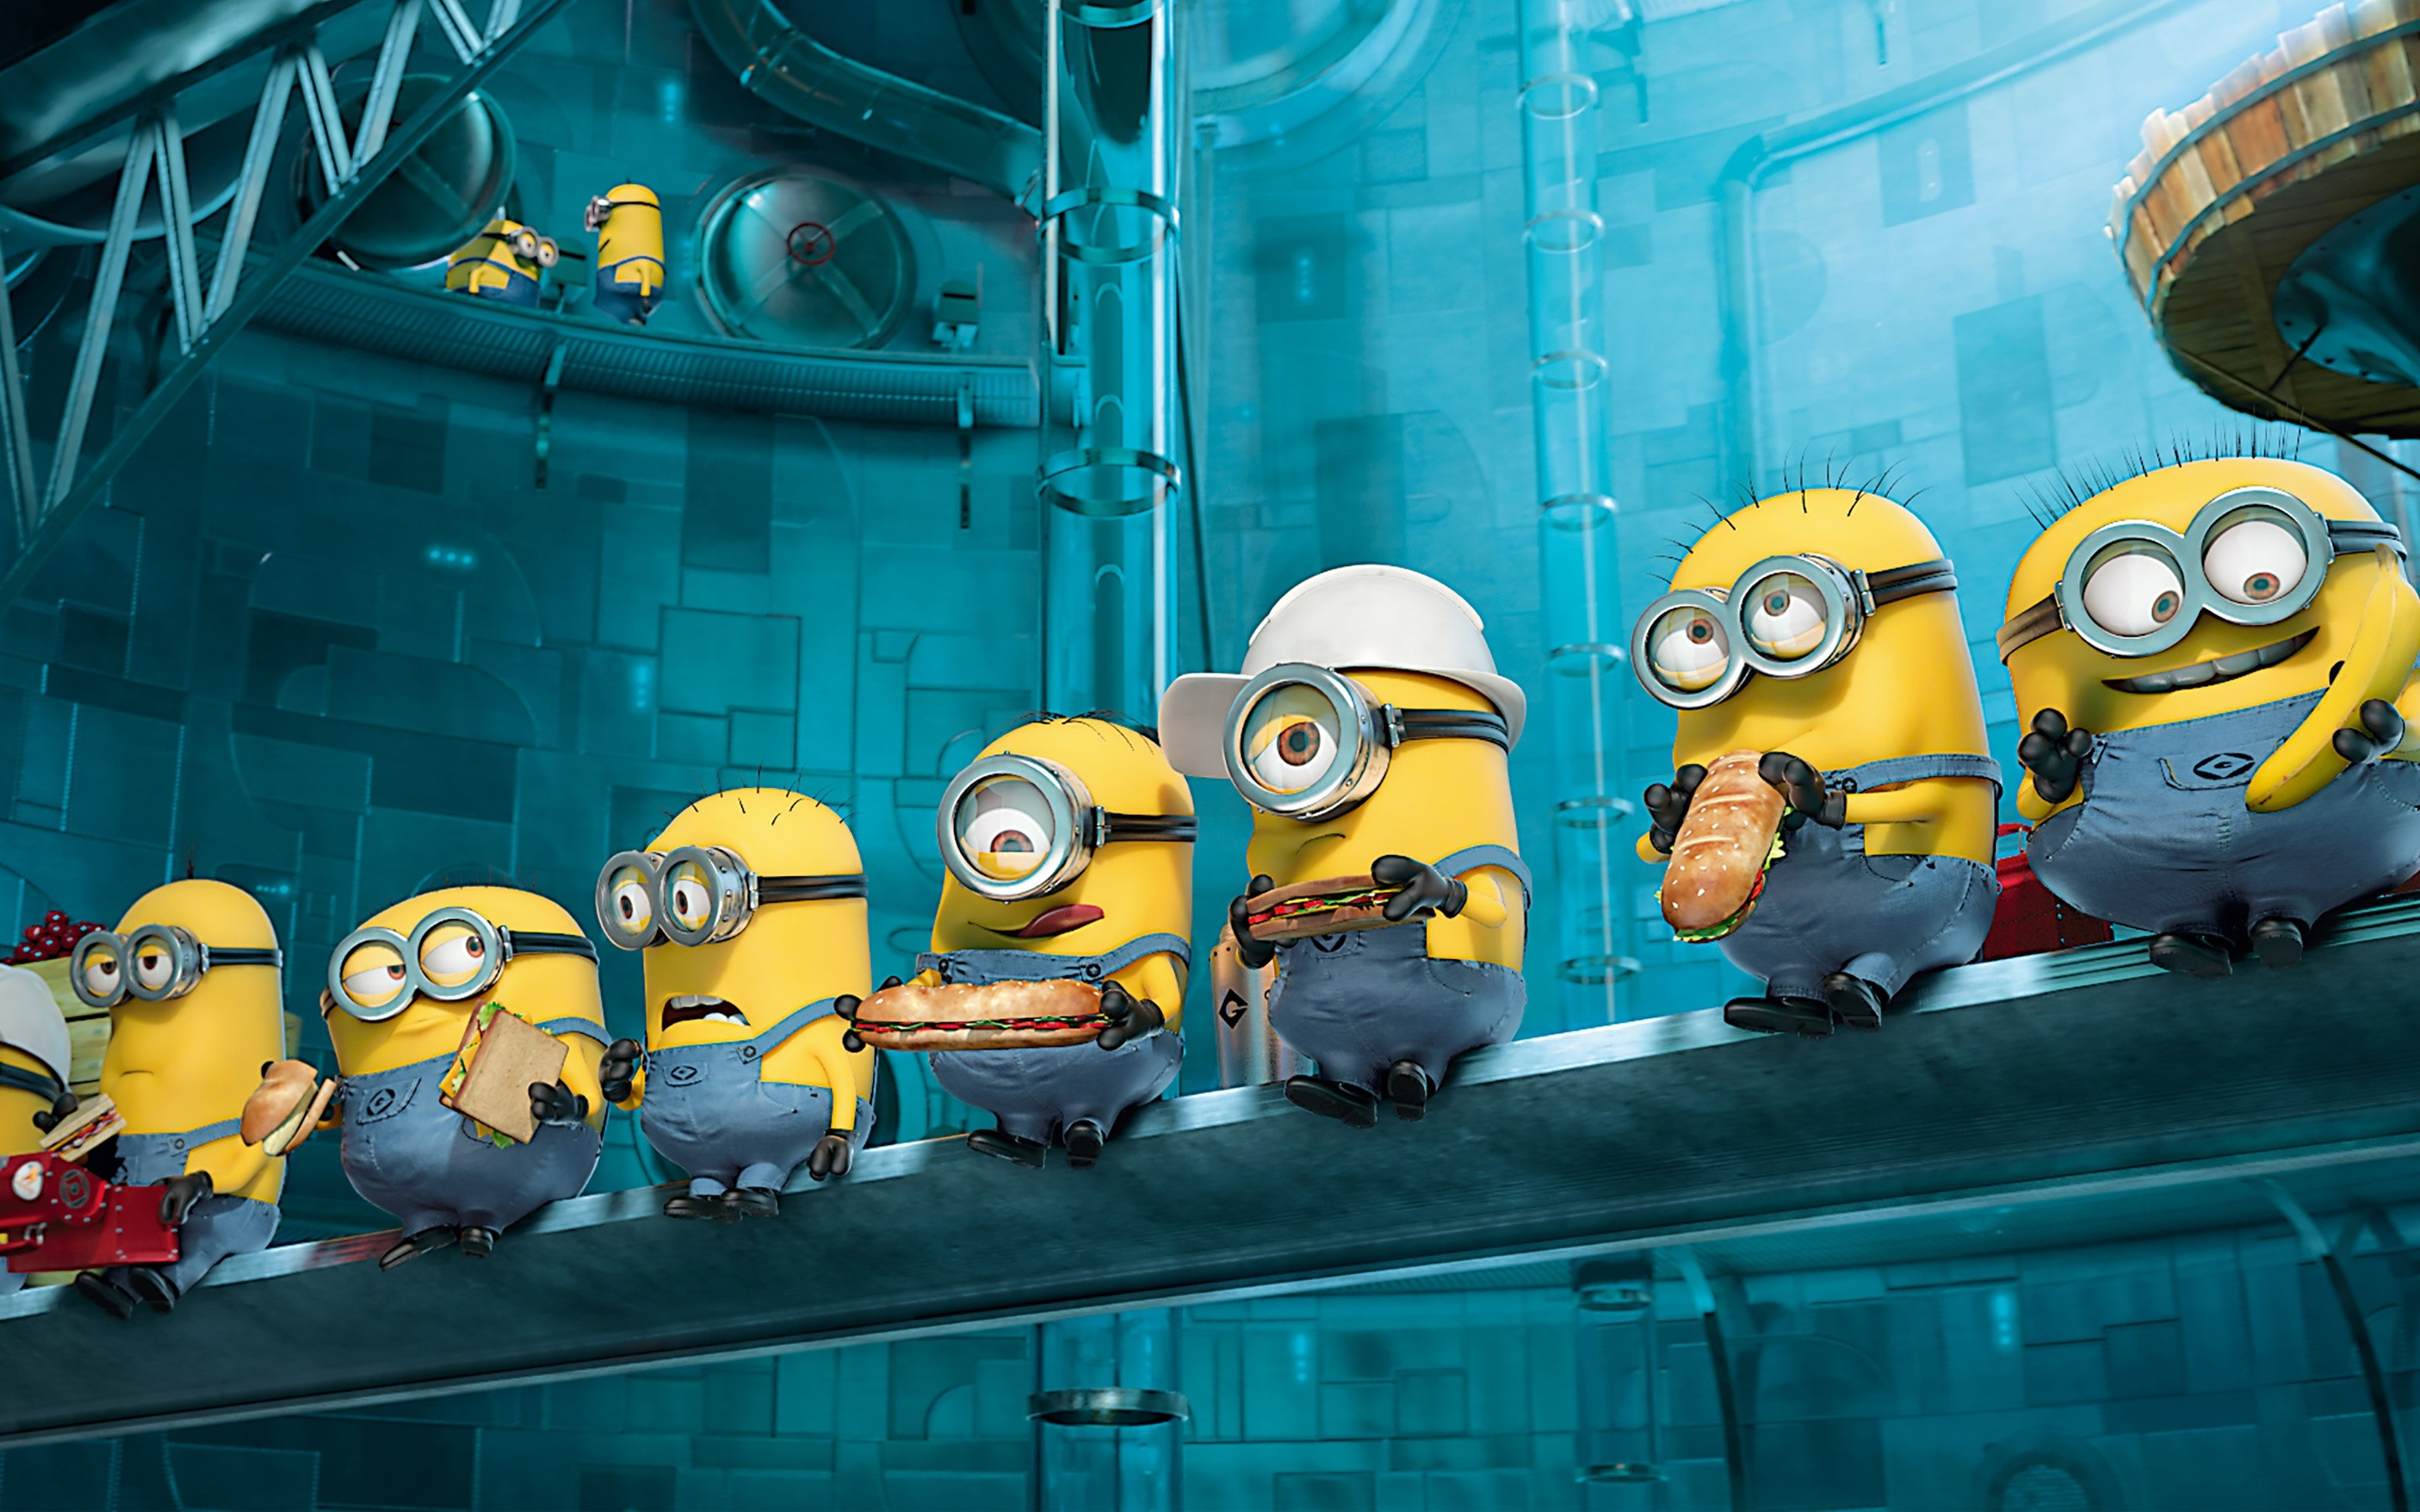 Wallpaper Minions in My favorite villain 2